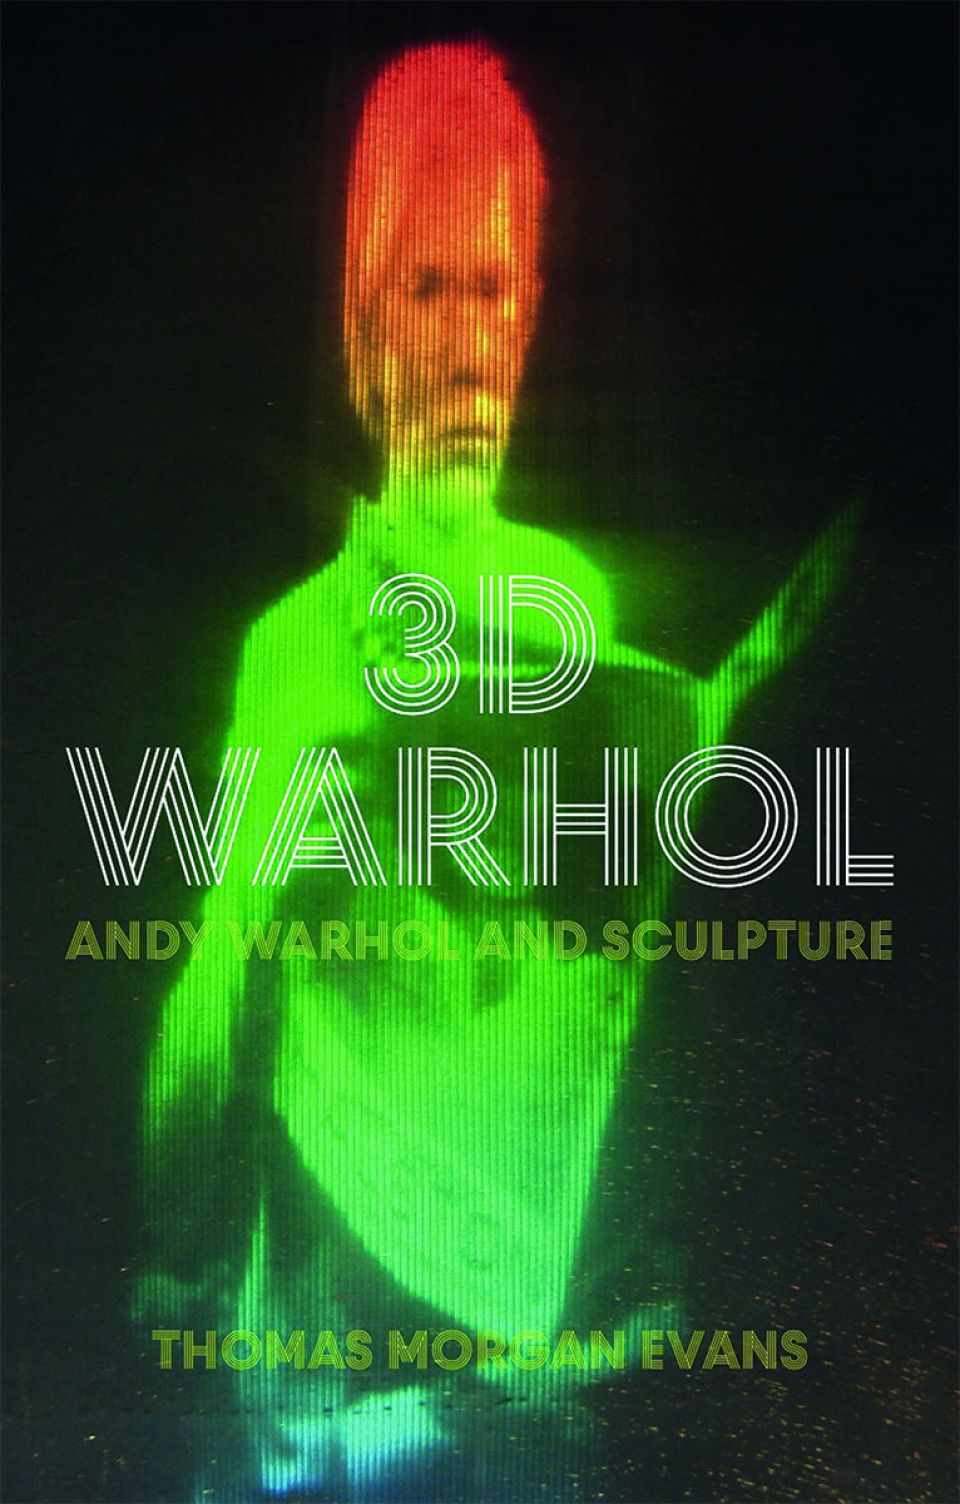 Amber Nash Nude book launch - 3d warhol: andy warhol and sculpture - what's